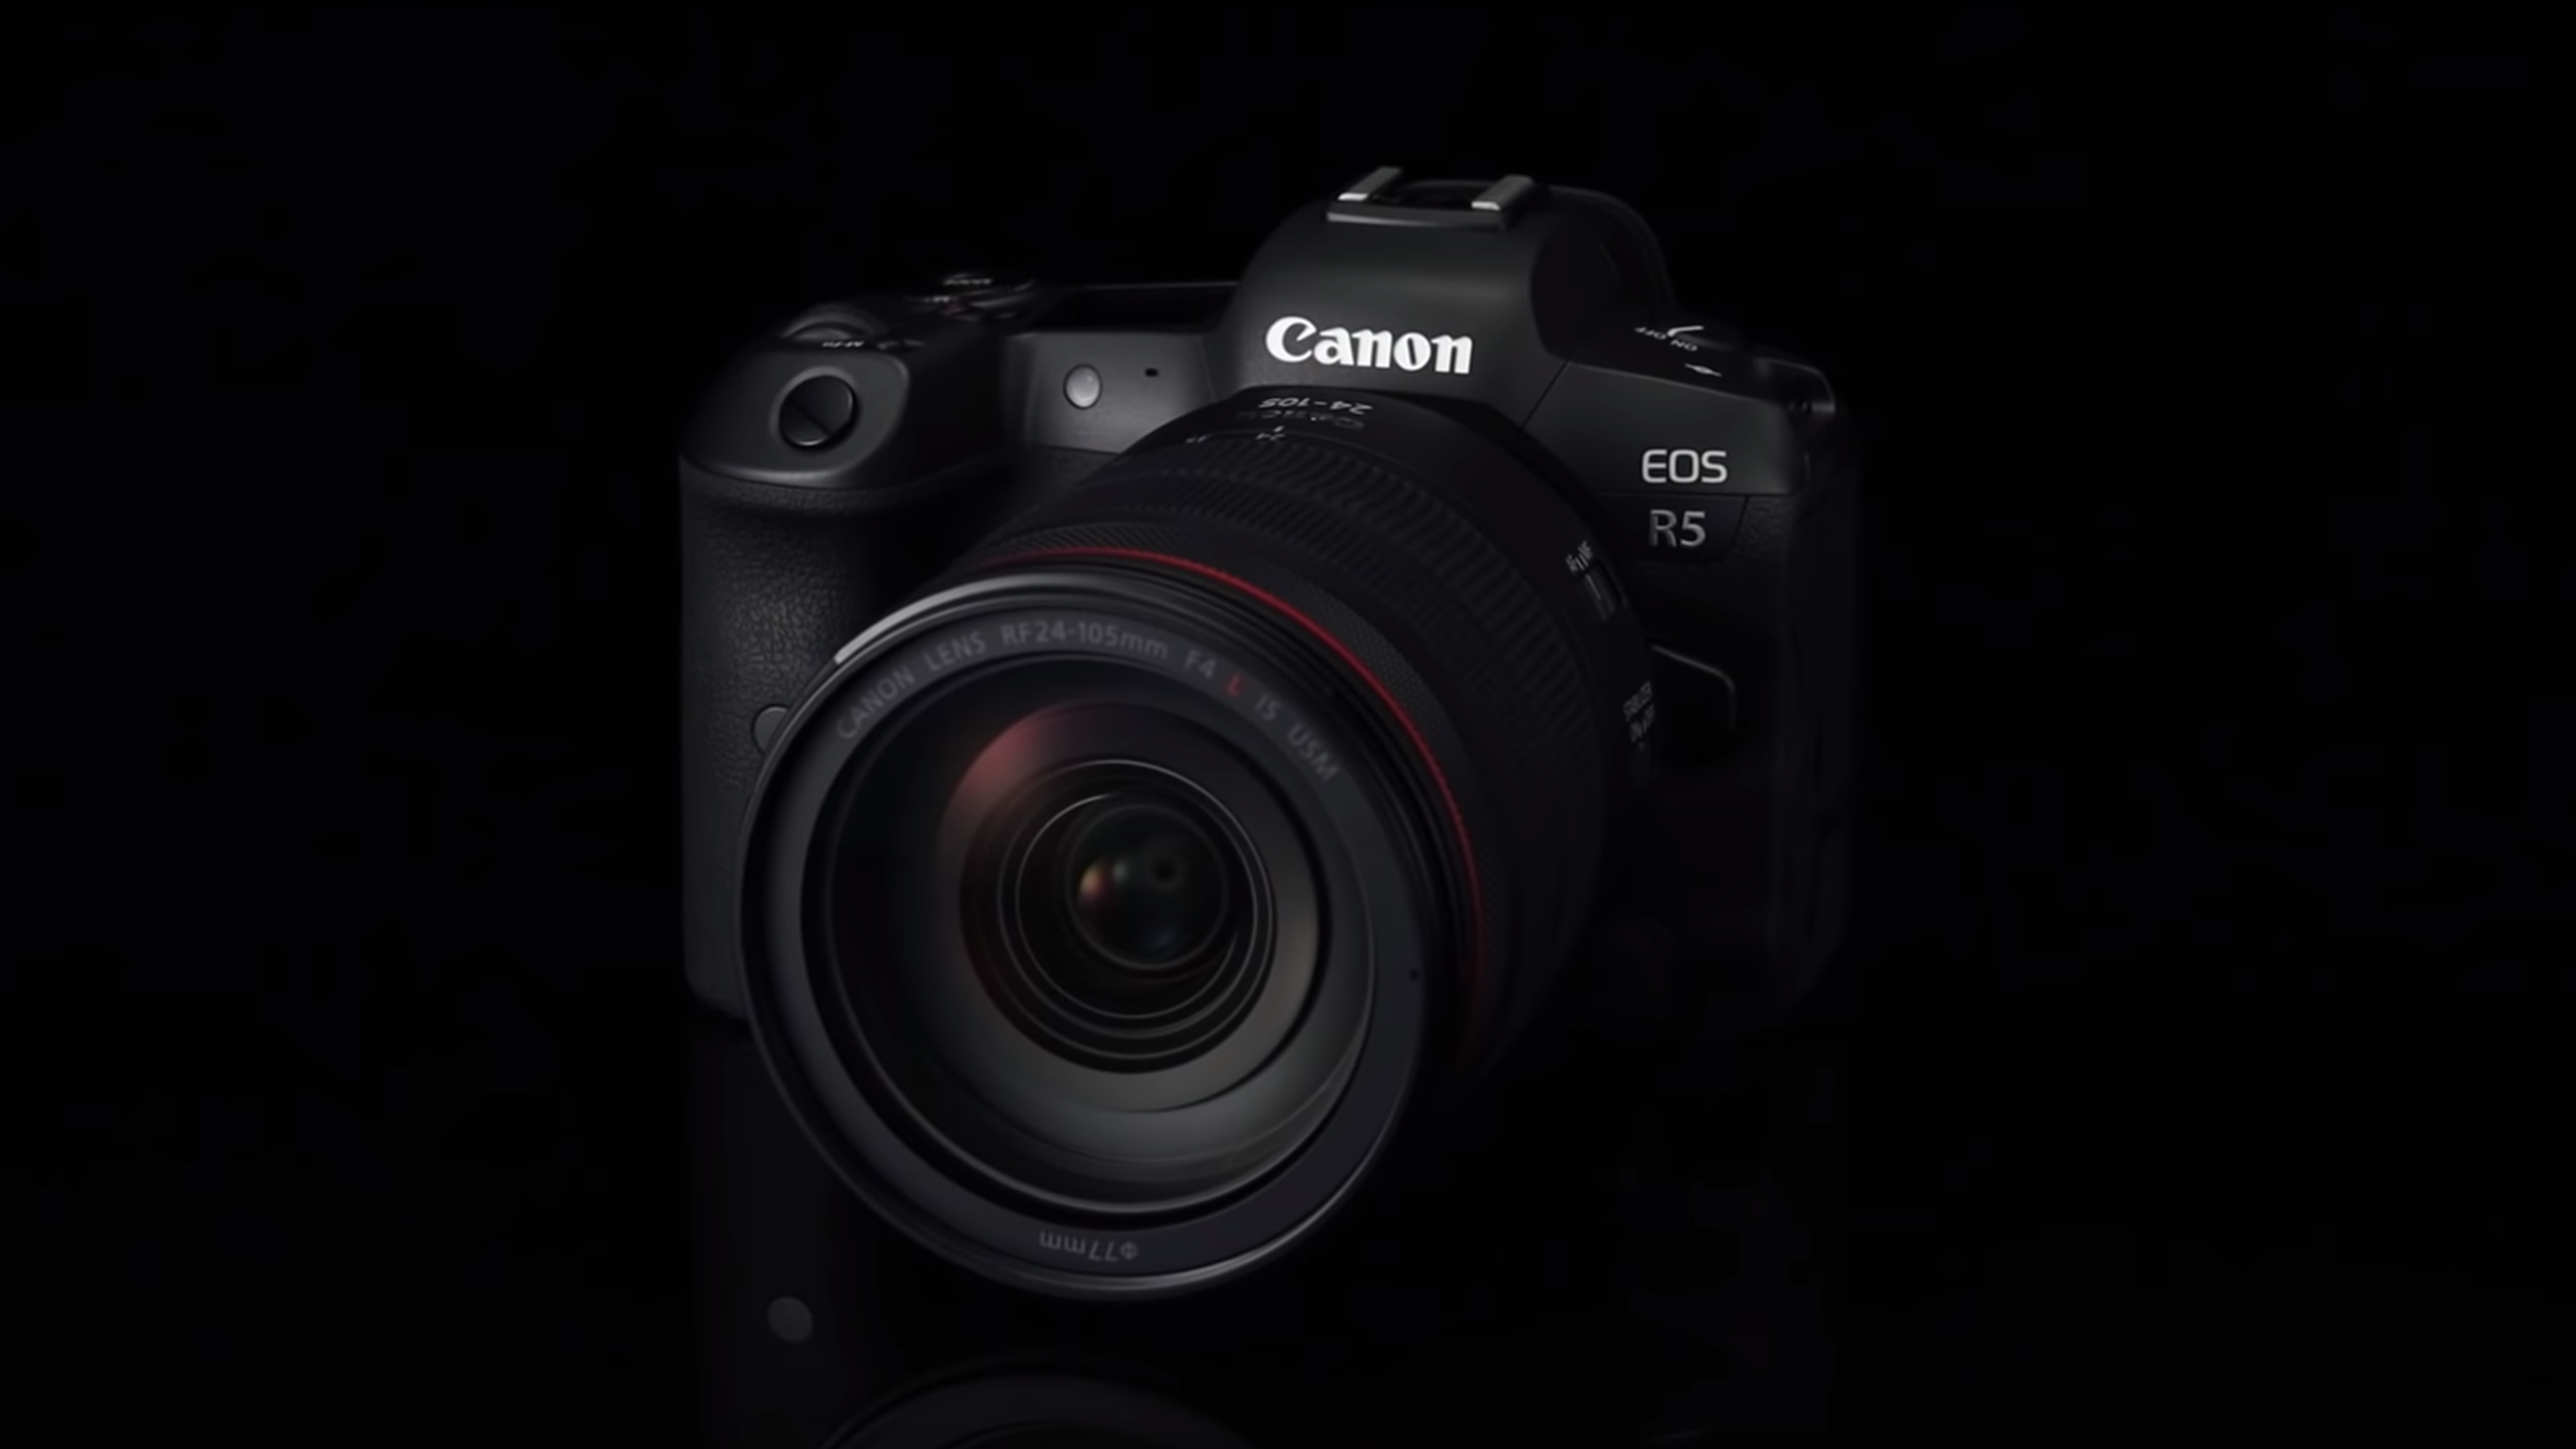 Canon's Next Fancy Full-Frame Mirrorless Cam Is The EOS R5